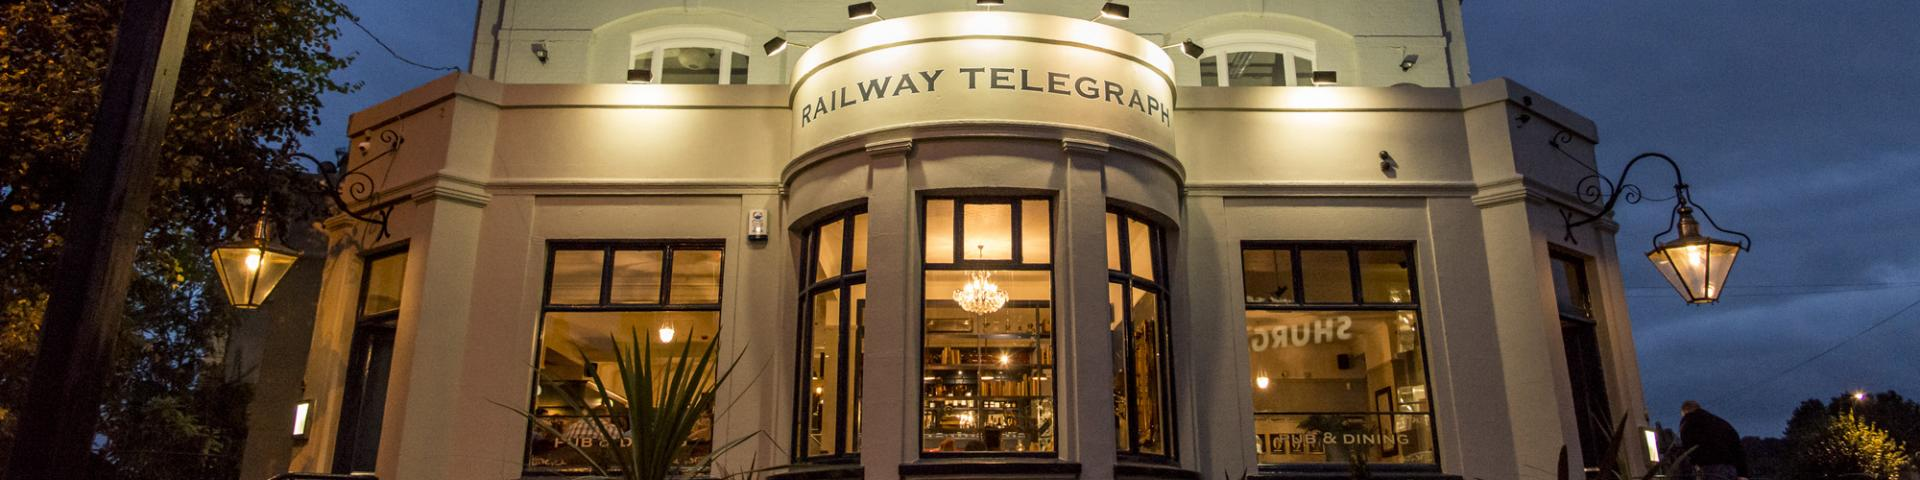 Railway Telegraph, Forest Hill, London